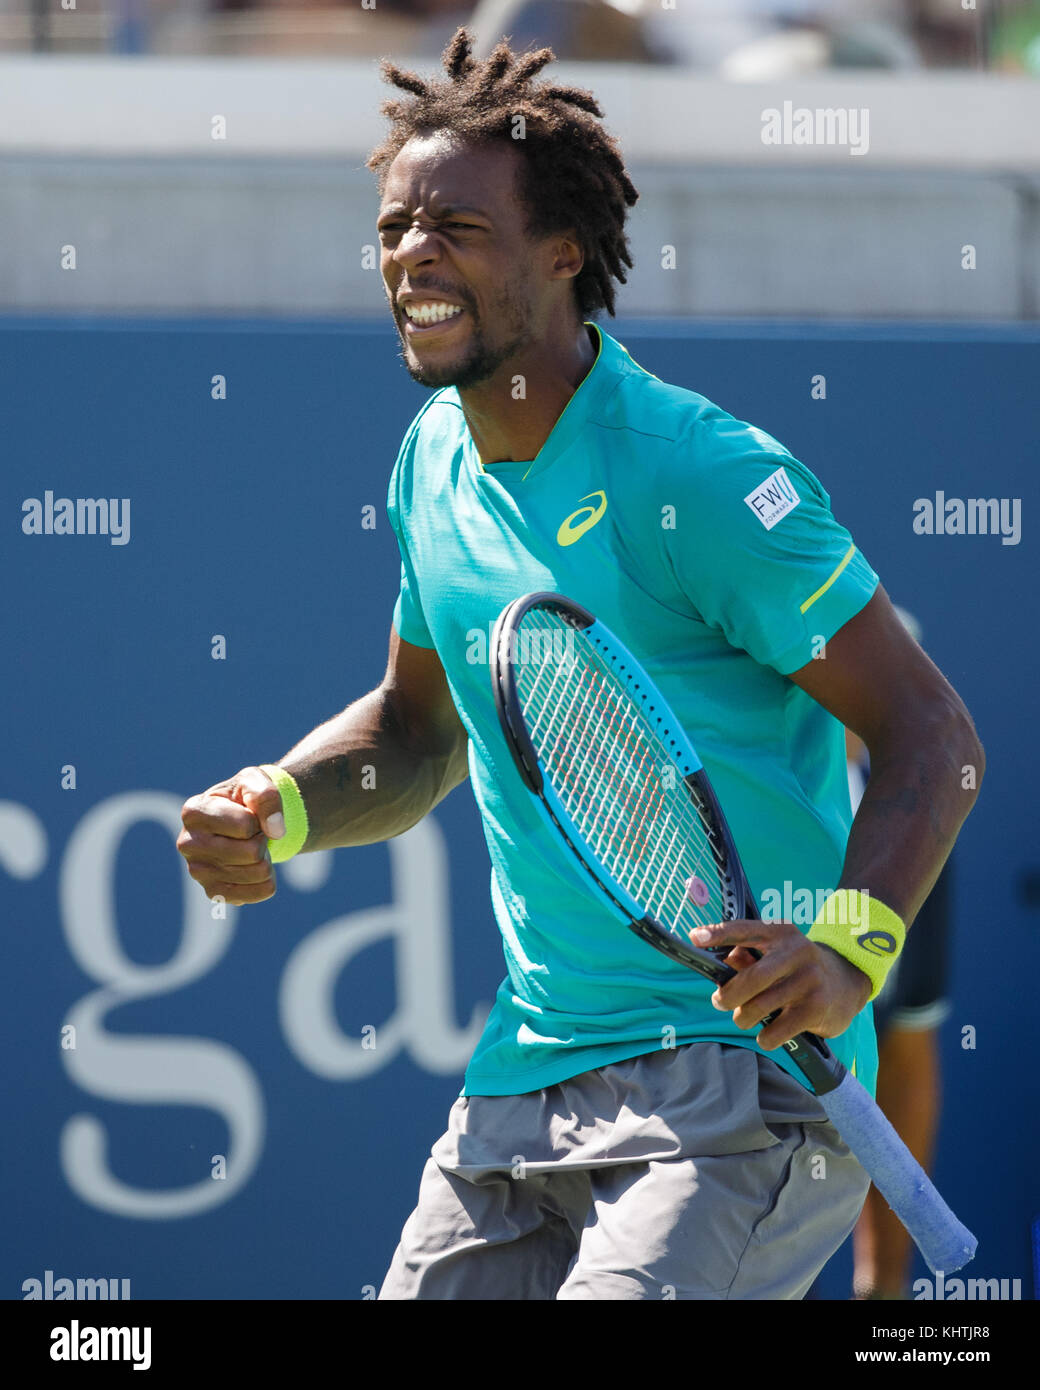 French tennis player GAEL MONFILS (FRA) celebrating during mens singles tennis match in US Open 2017 Tennis Championship, - Stock Image